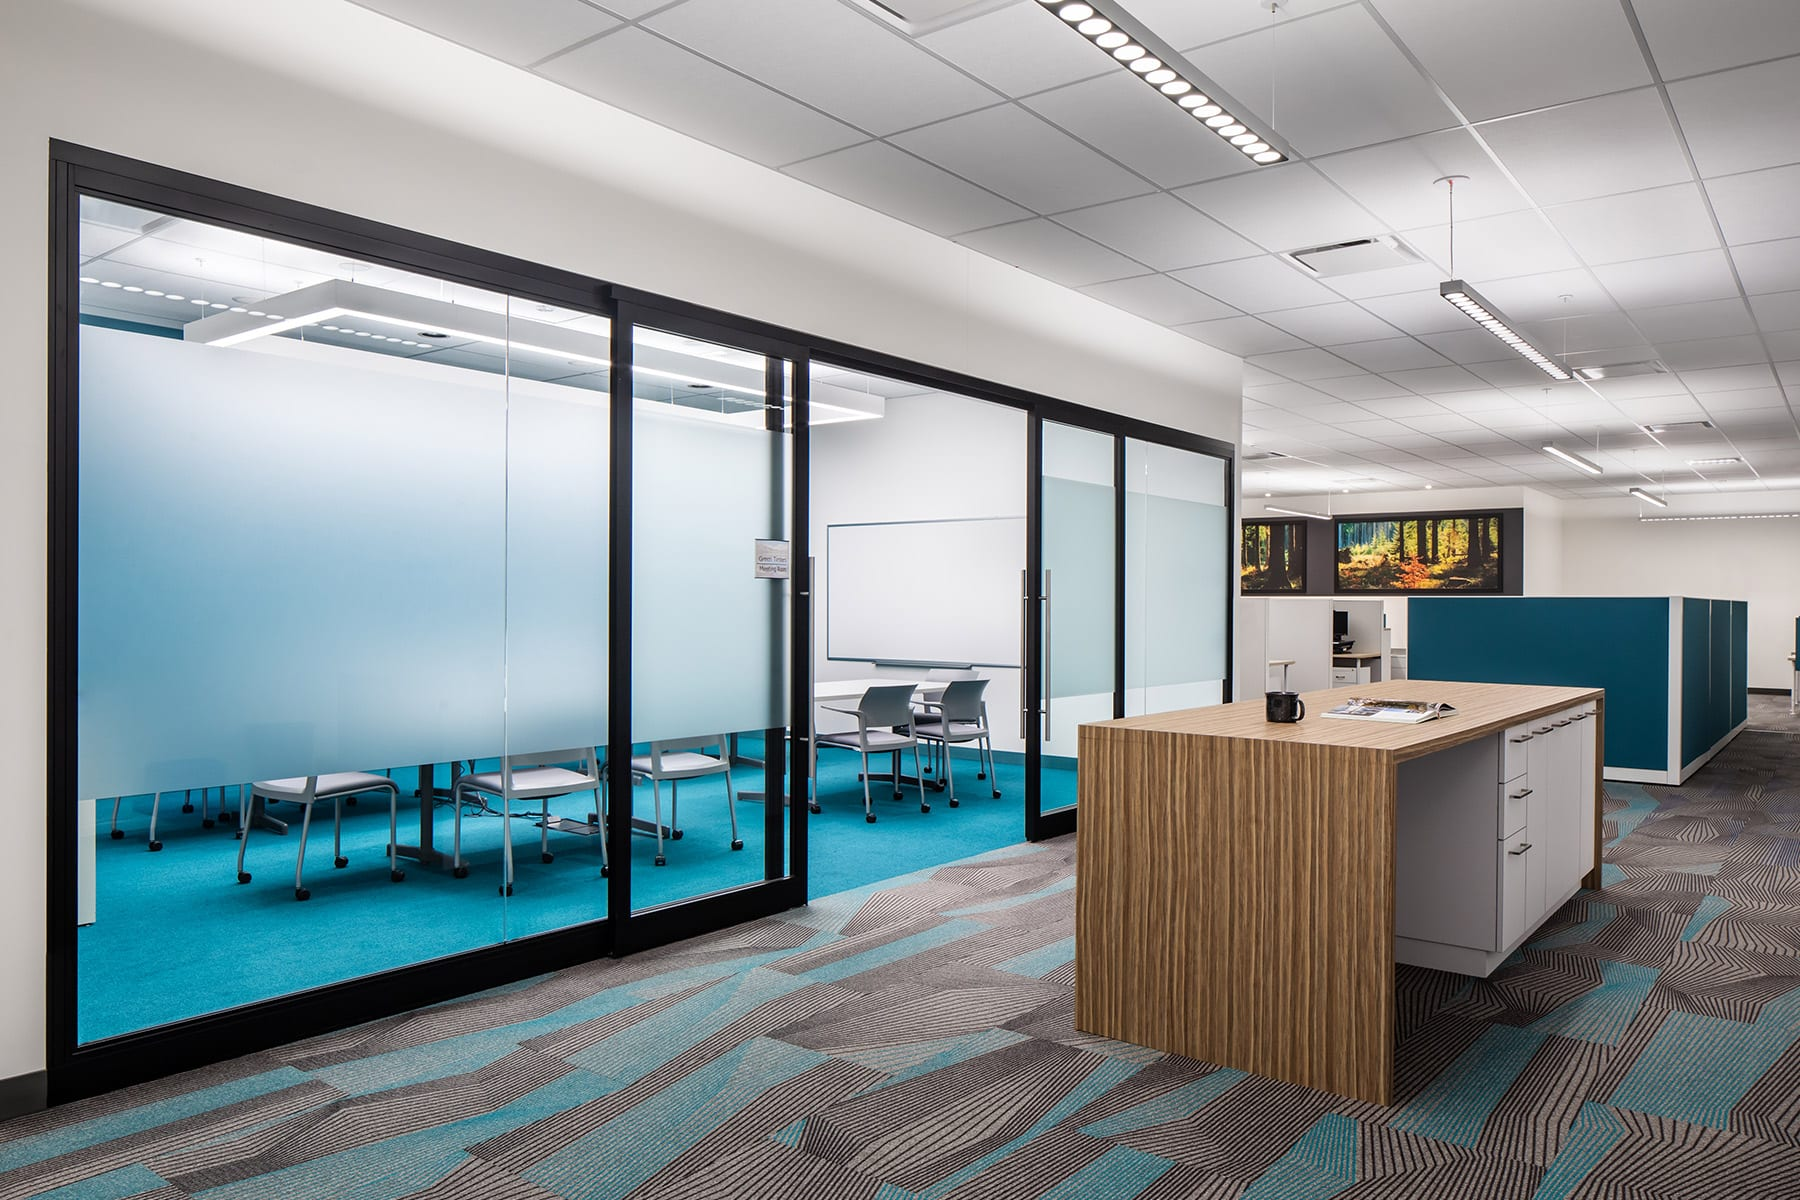 Tenant improvement for Health Informatics' office with T bar ceilings, partition glazing system, workstations and large meeting room